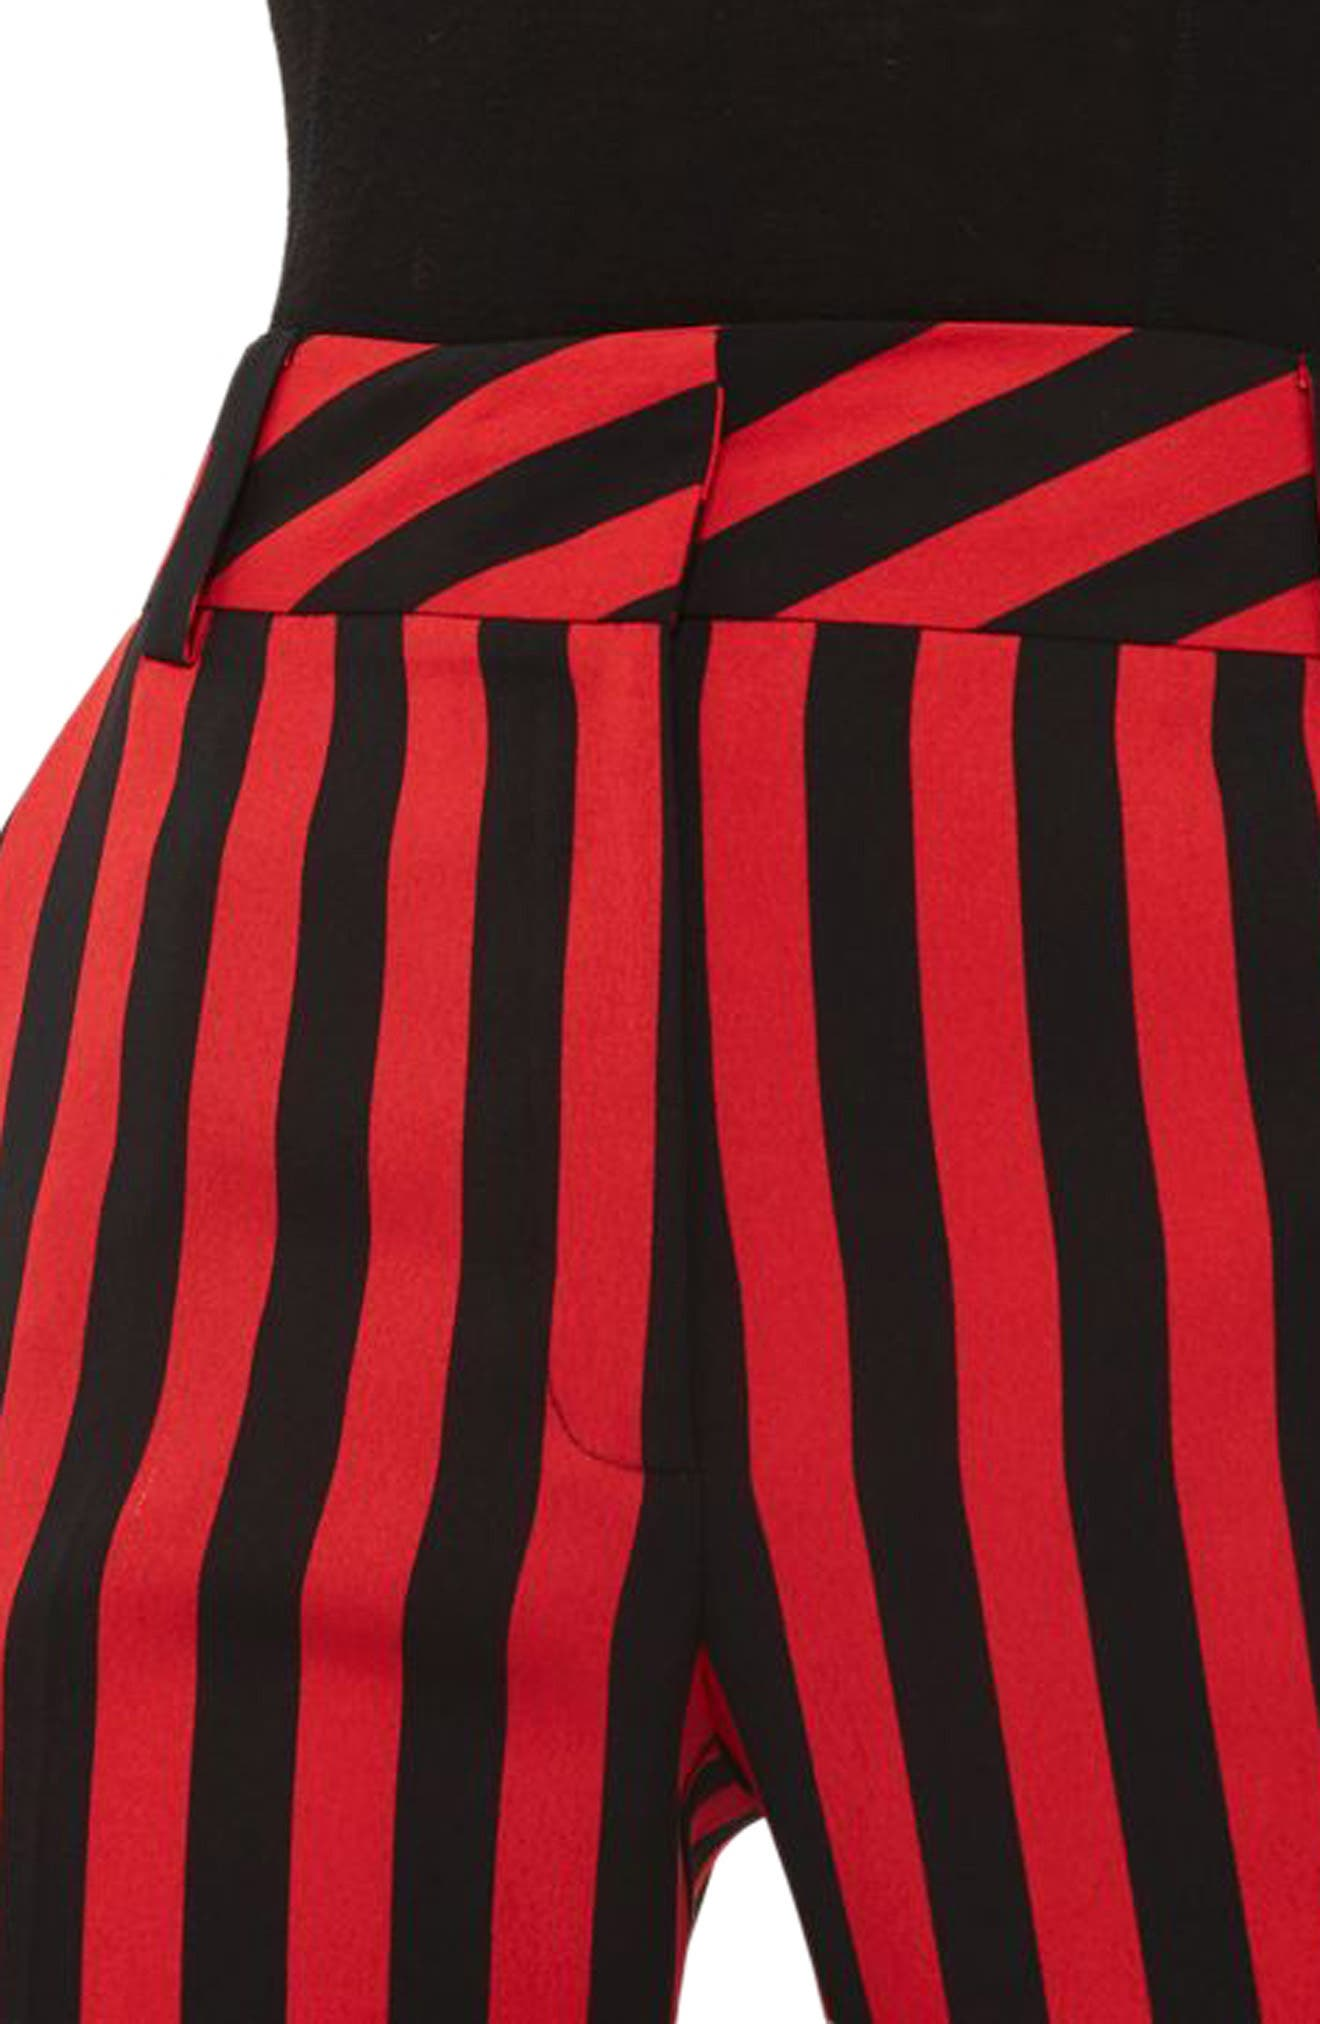 Humbug Stripe Trousers,                             Alternate thumbnail 4, color,                             Red Multi